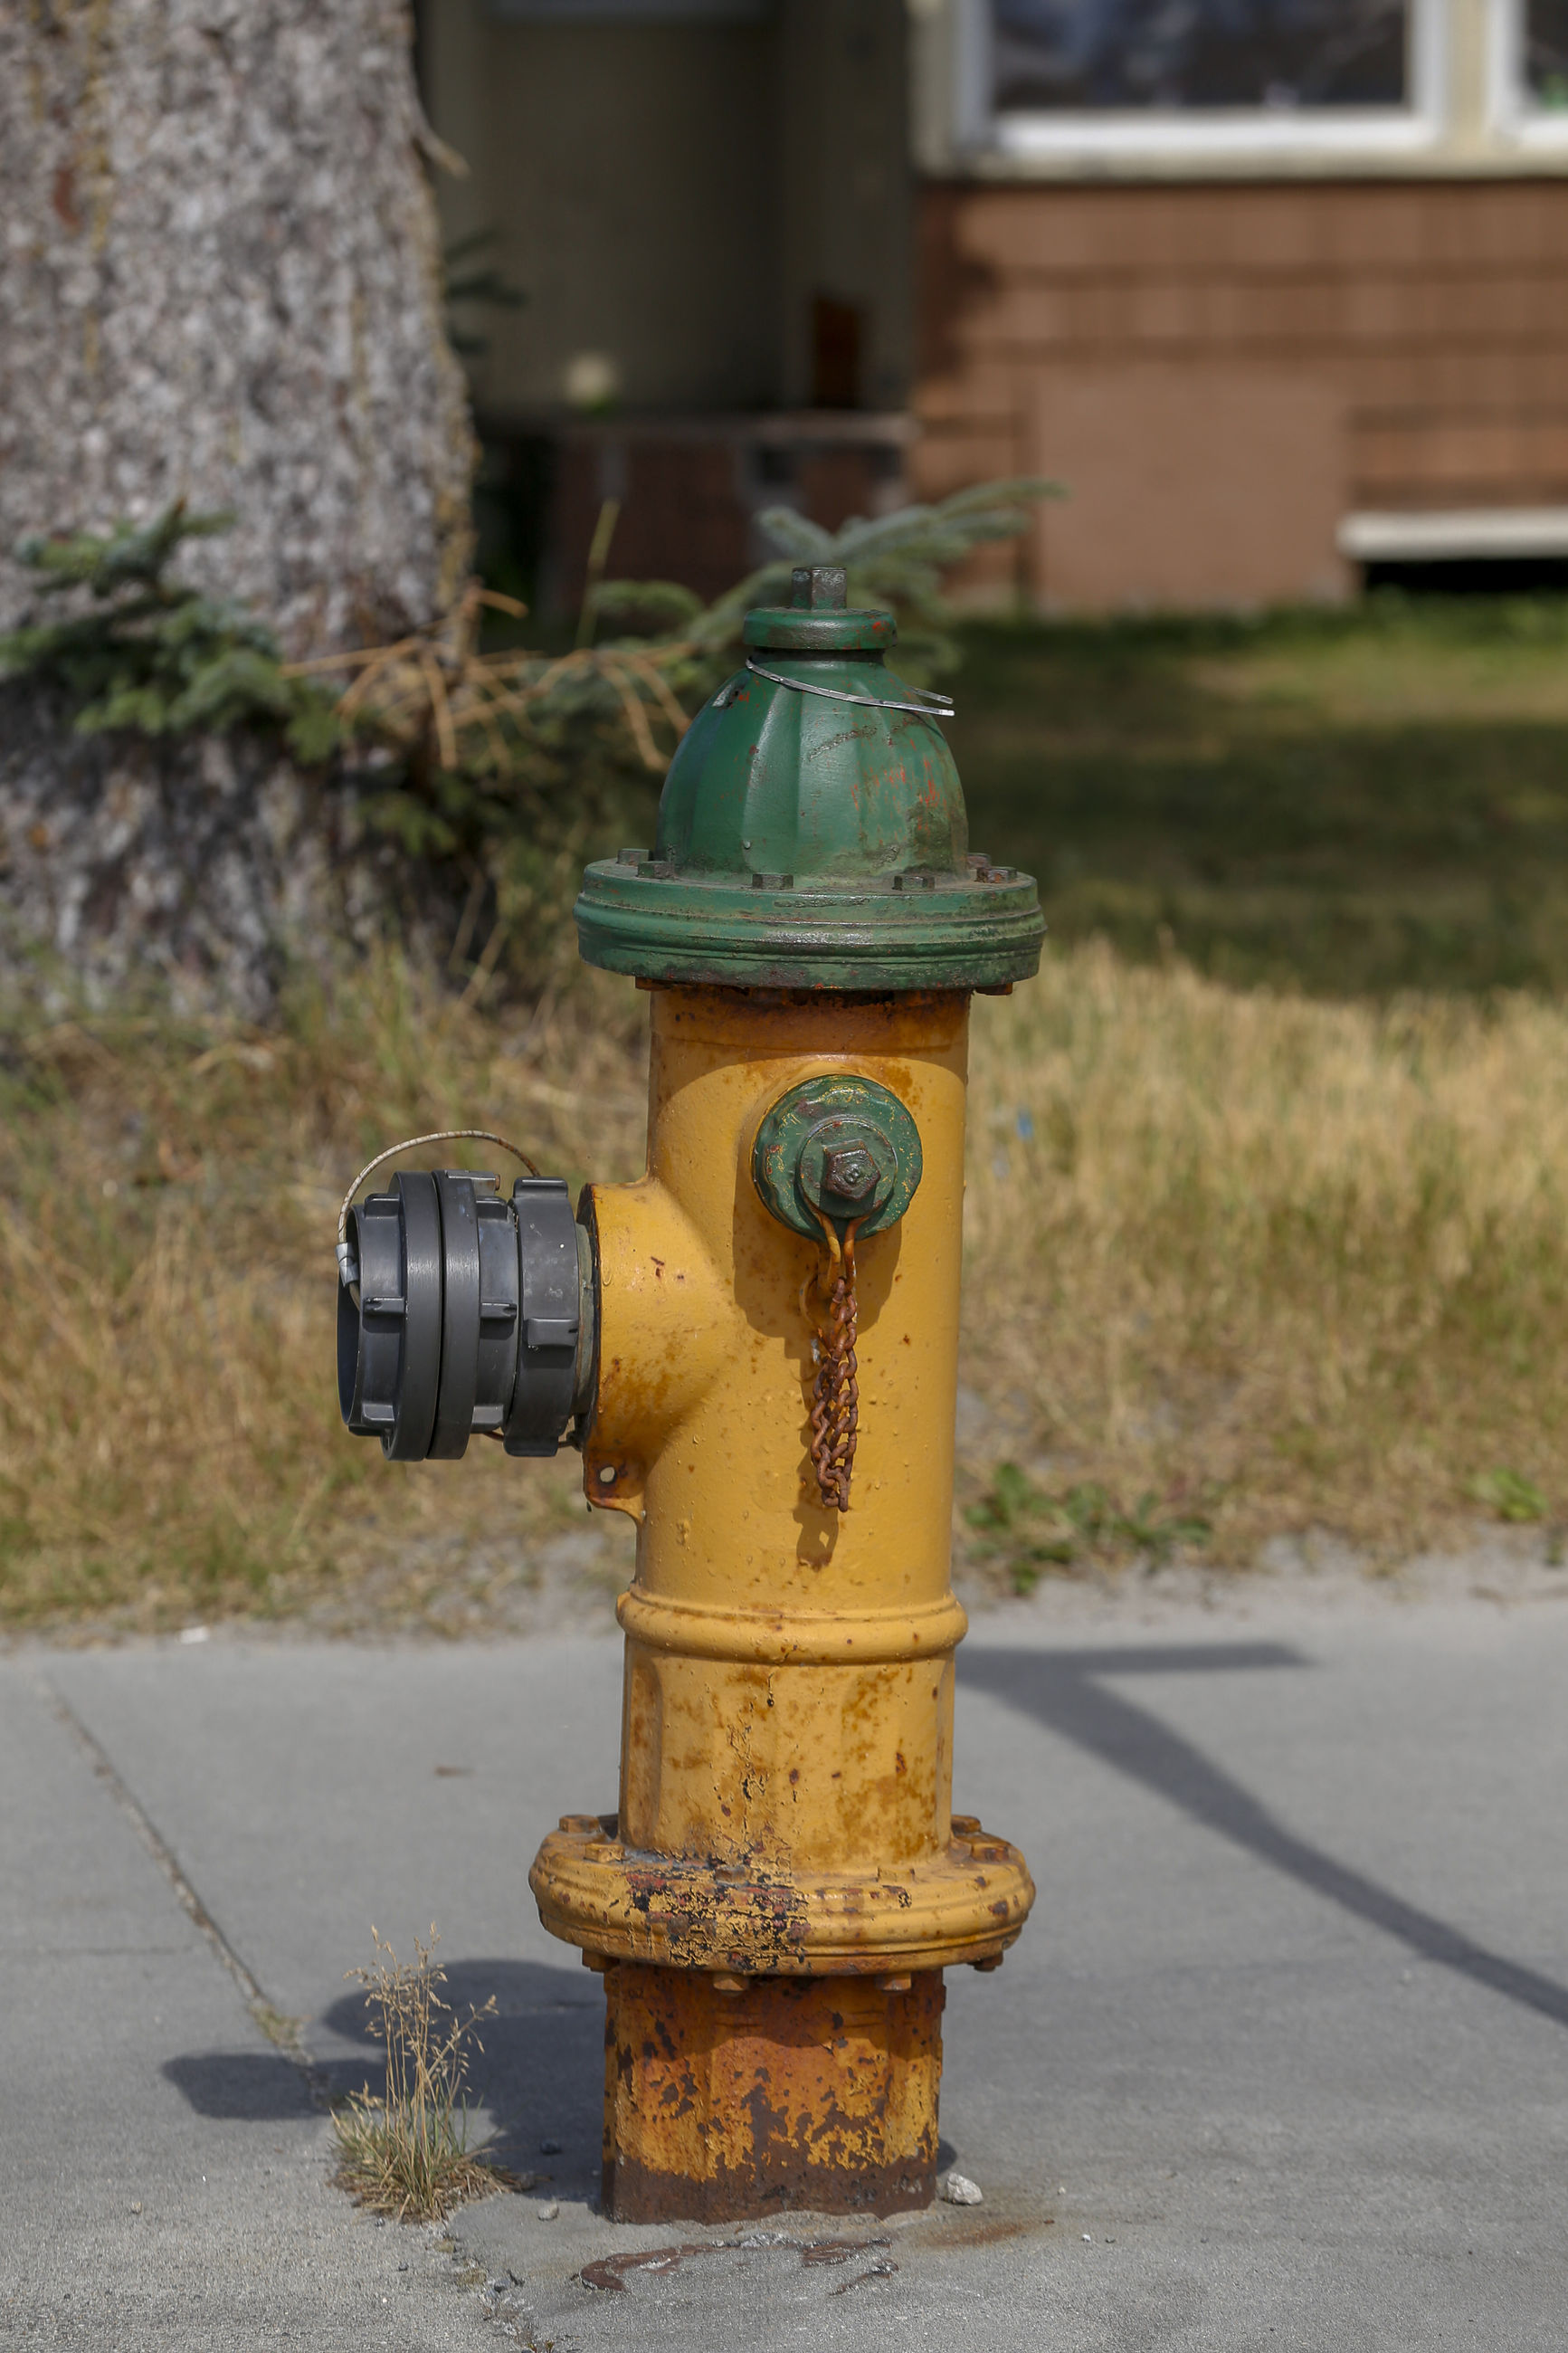 View of fire hydrant on street